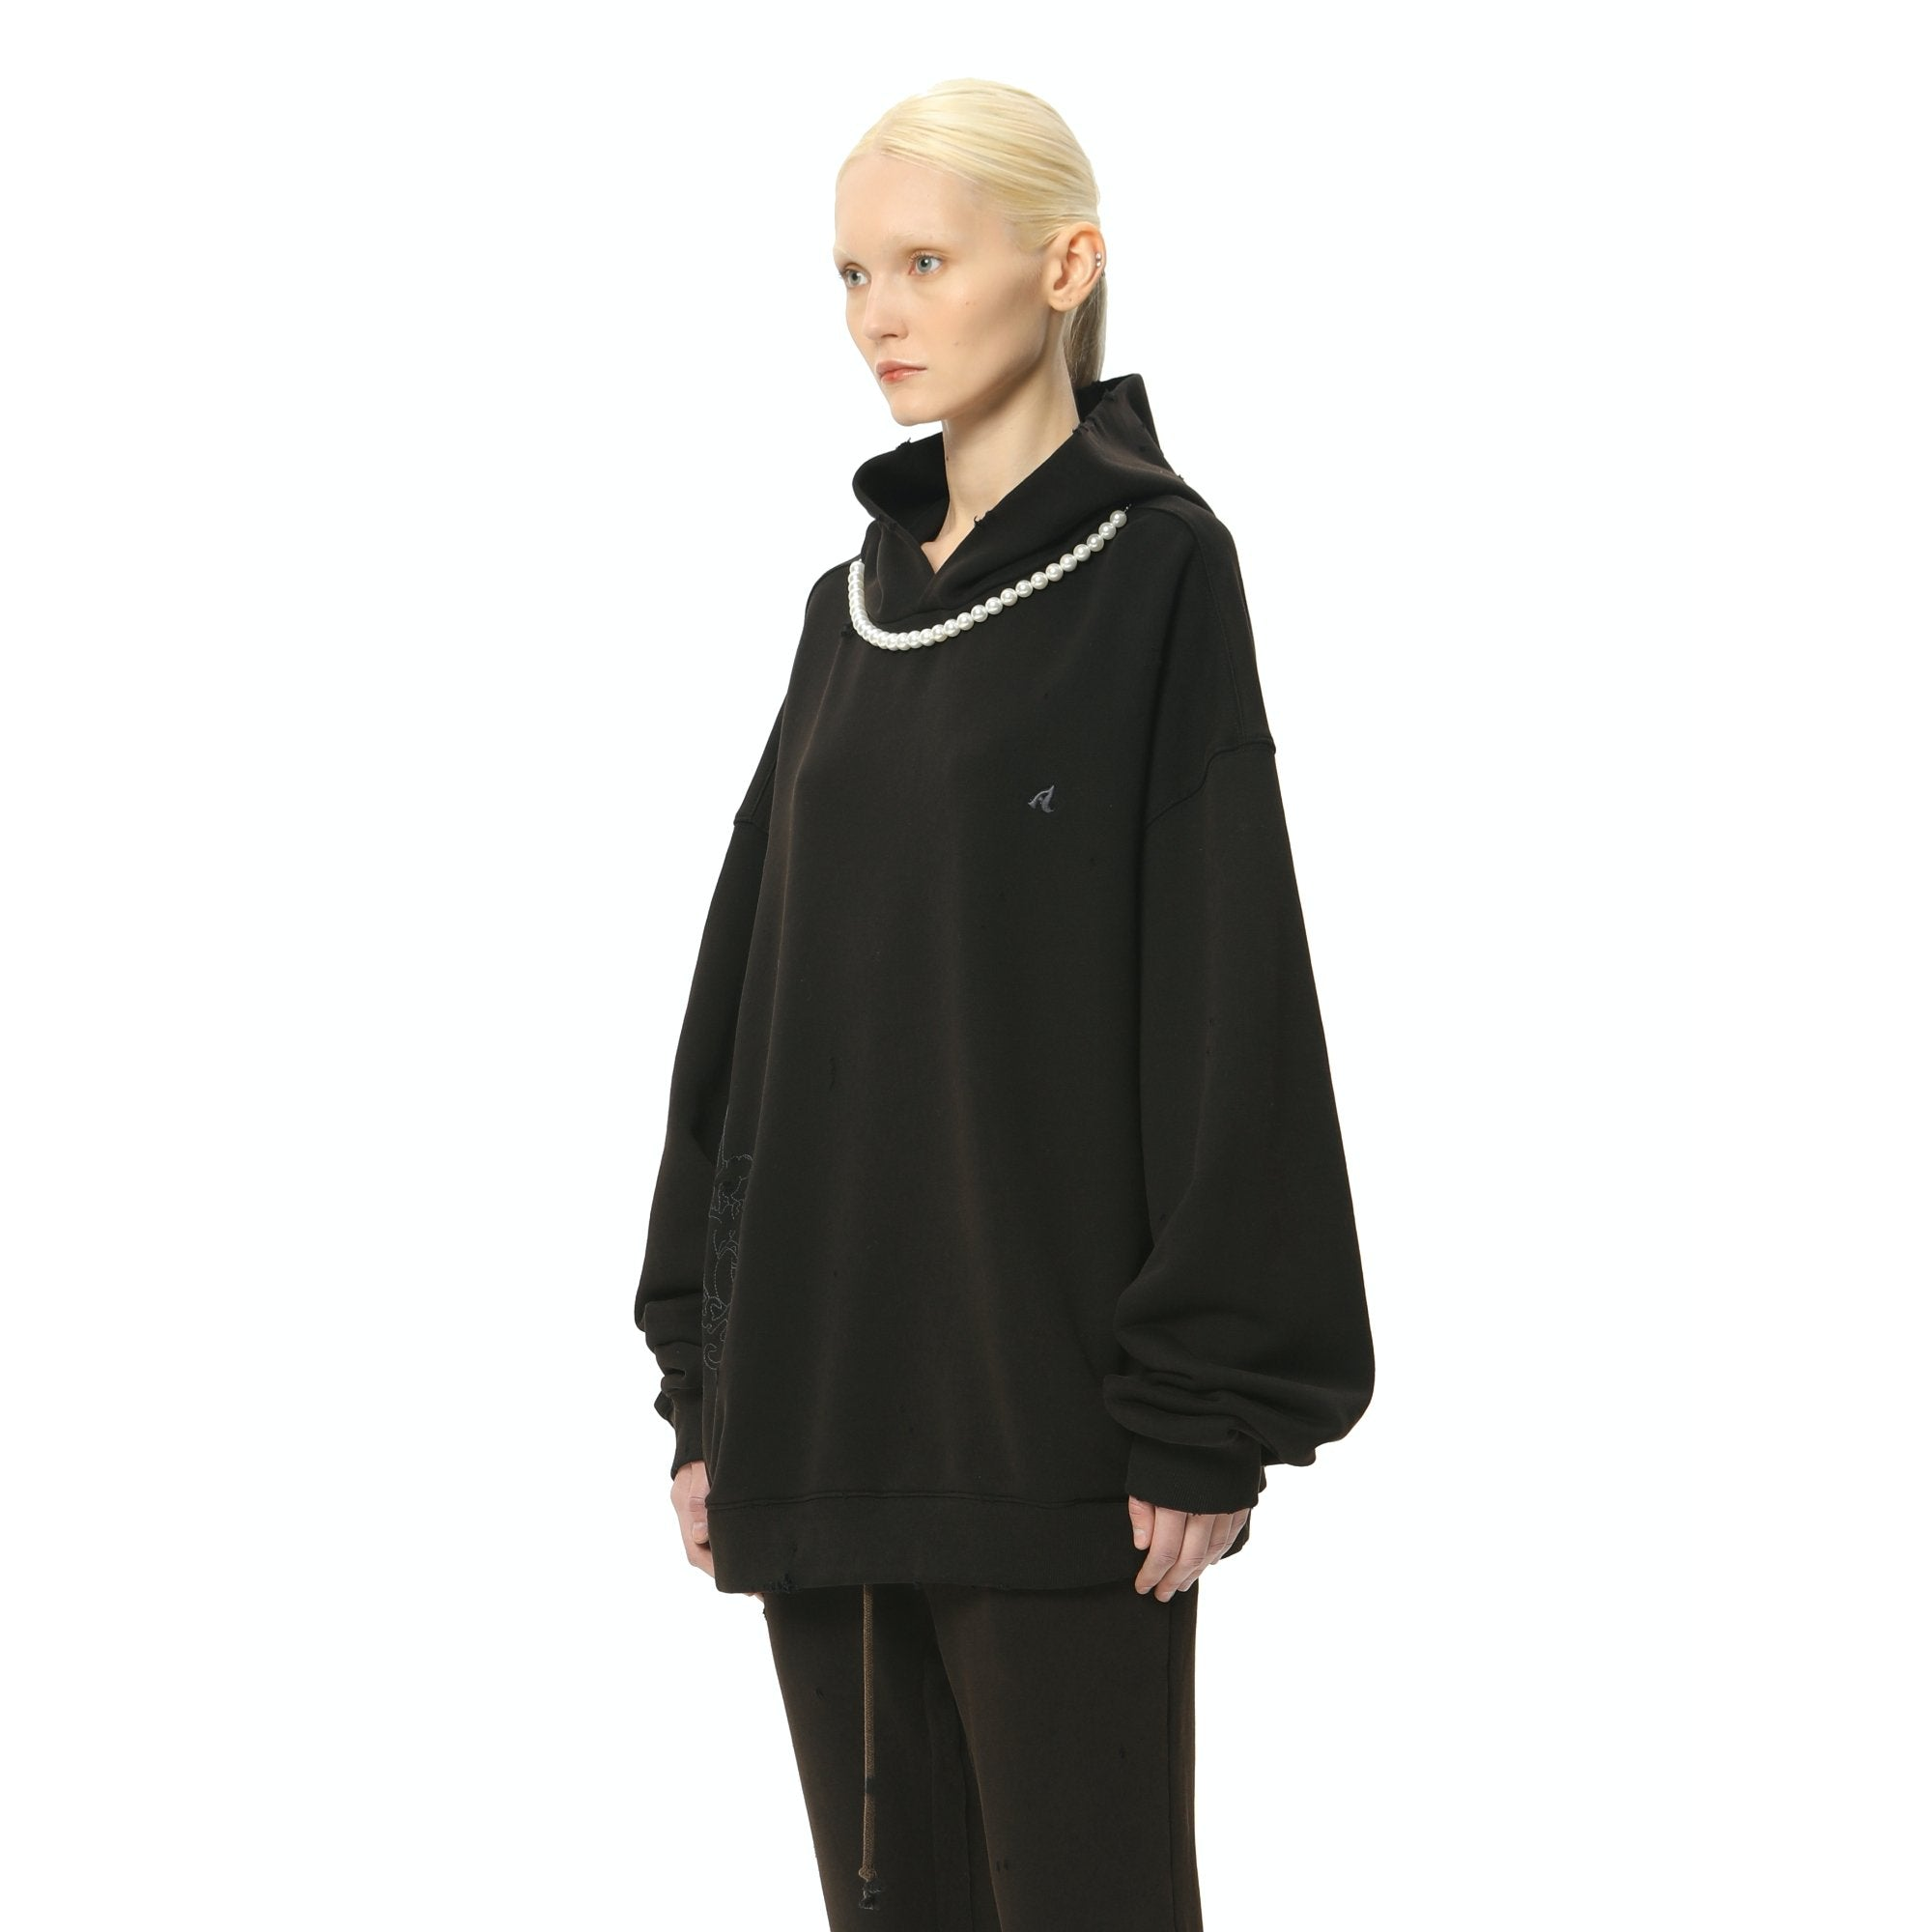 AIN'T SHY Pearl Necklace Hoodie Ore Black | MADA IN CHINA